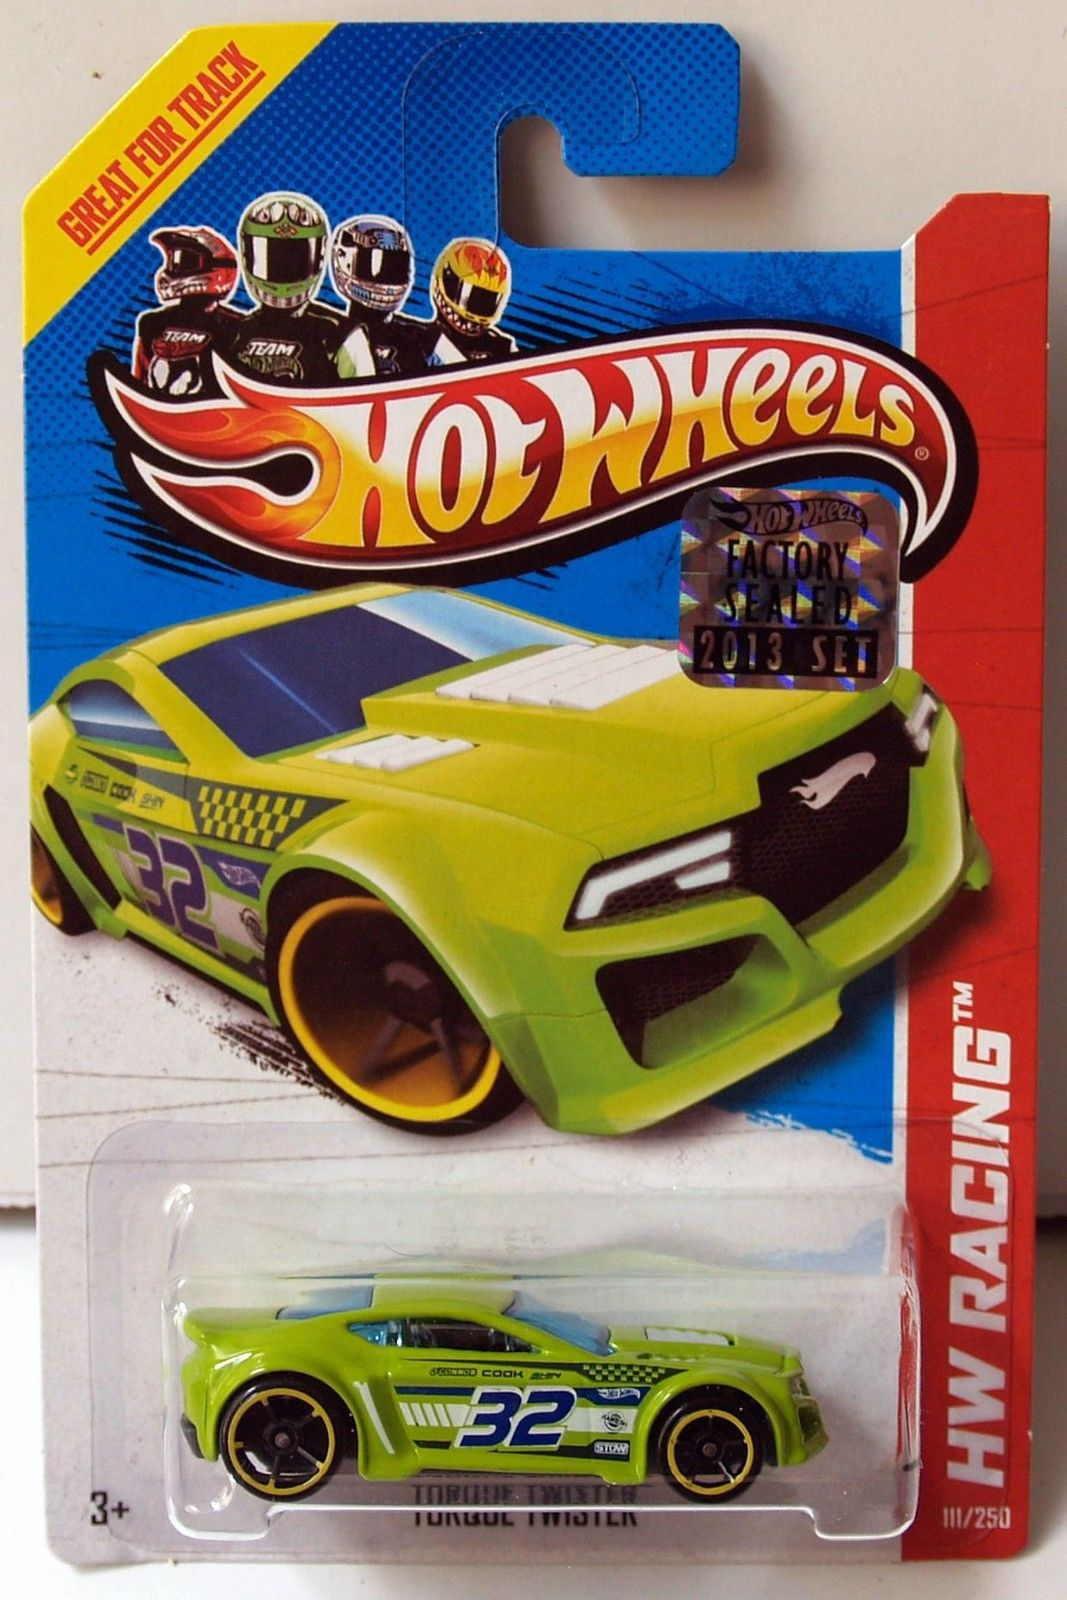 HOT WHEELS 2013 HW RACING THRILL RACERS TORQUE TWISTER FACTORY SEALED